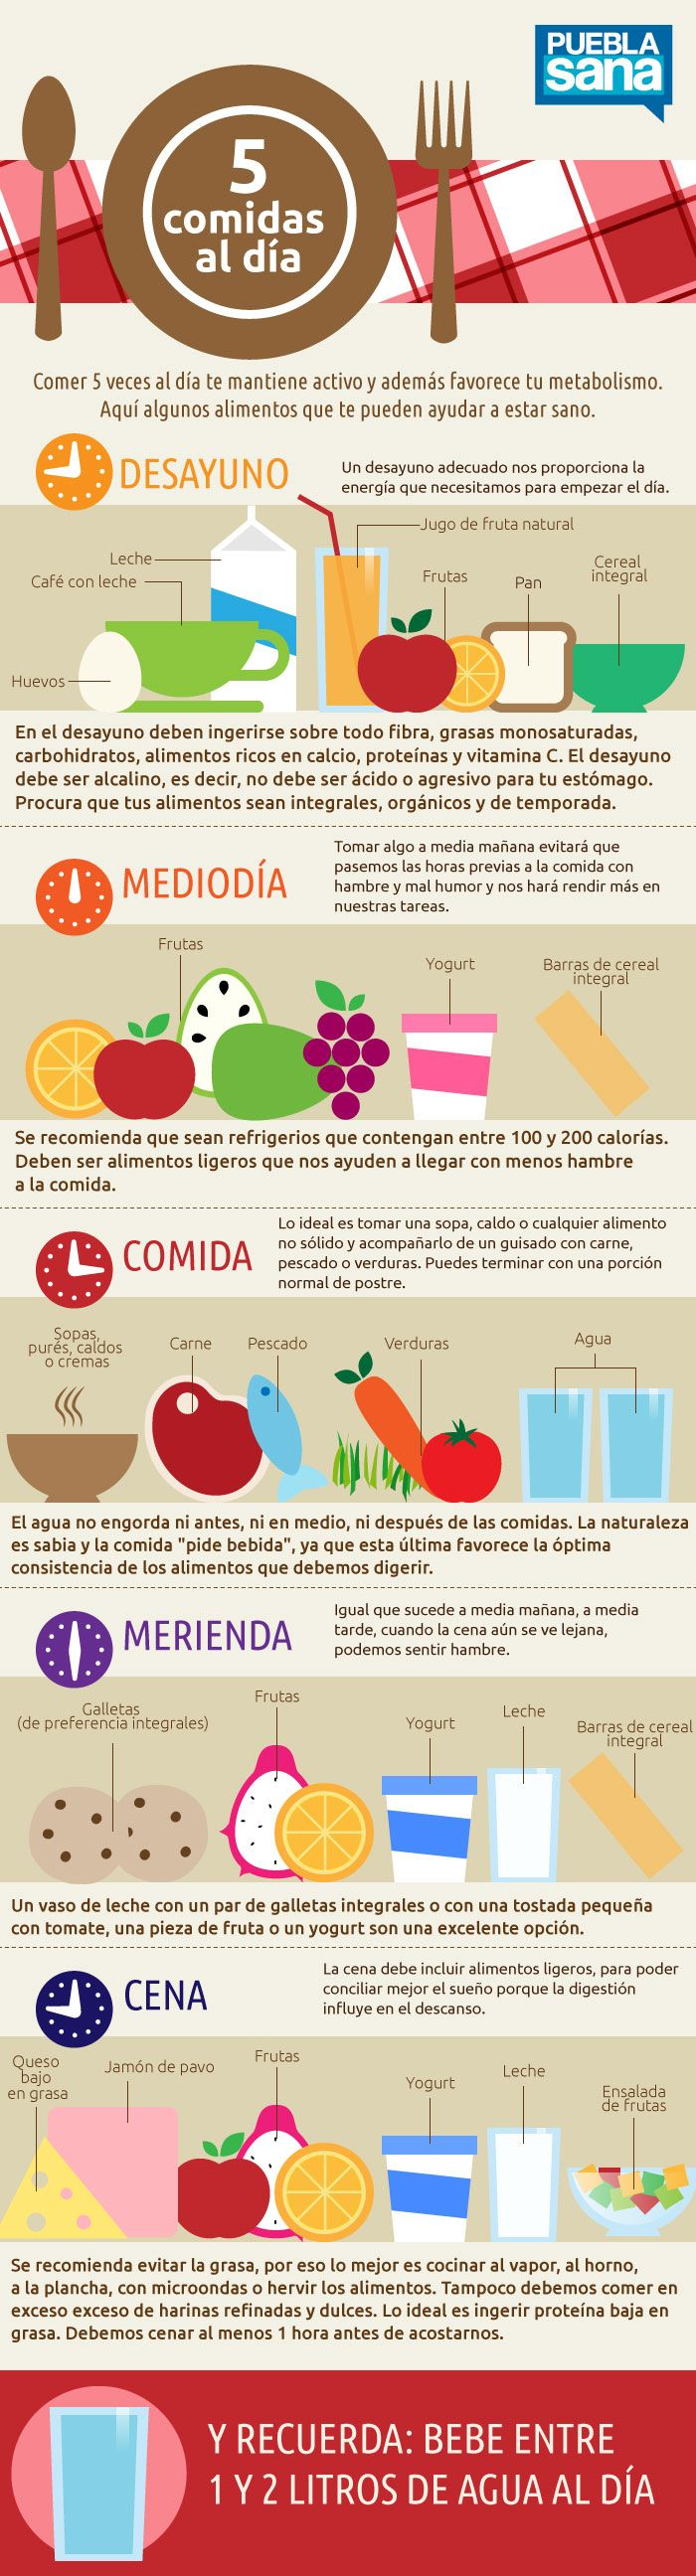 5 Comidas Al Día - Infografía This is just perfect! I love that there are clocks to show what time they eat the meals and snacks. De la Secretaria de Salud del gobierno de Puebla, Méx. #Realidades3B